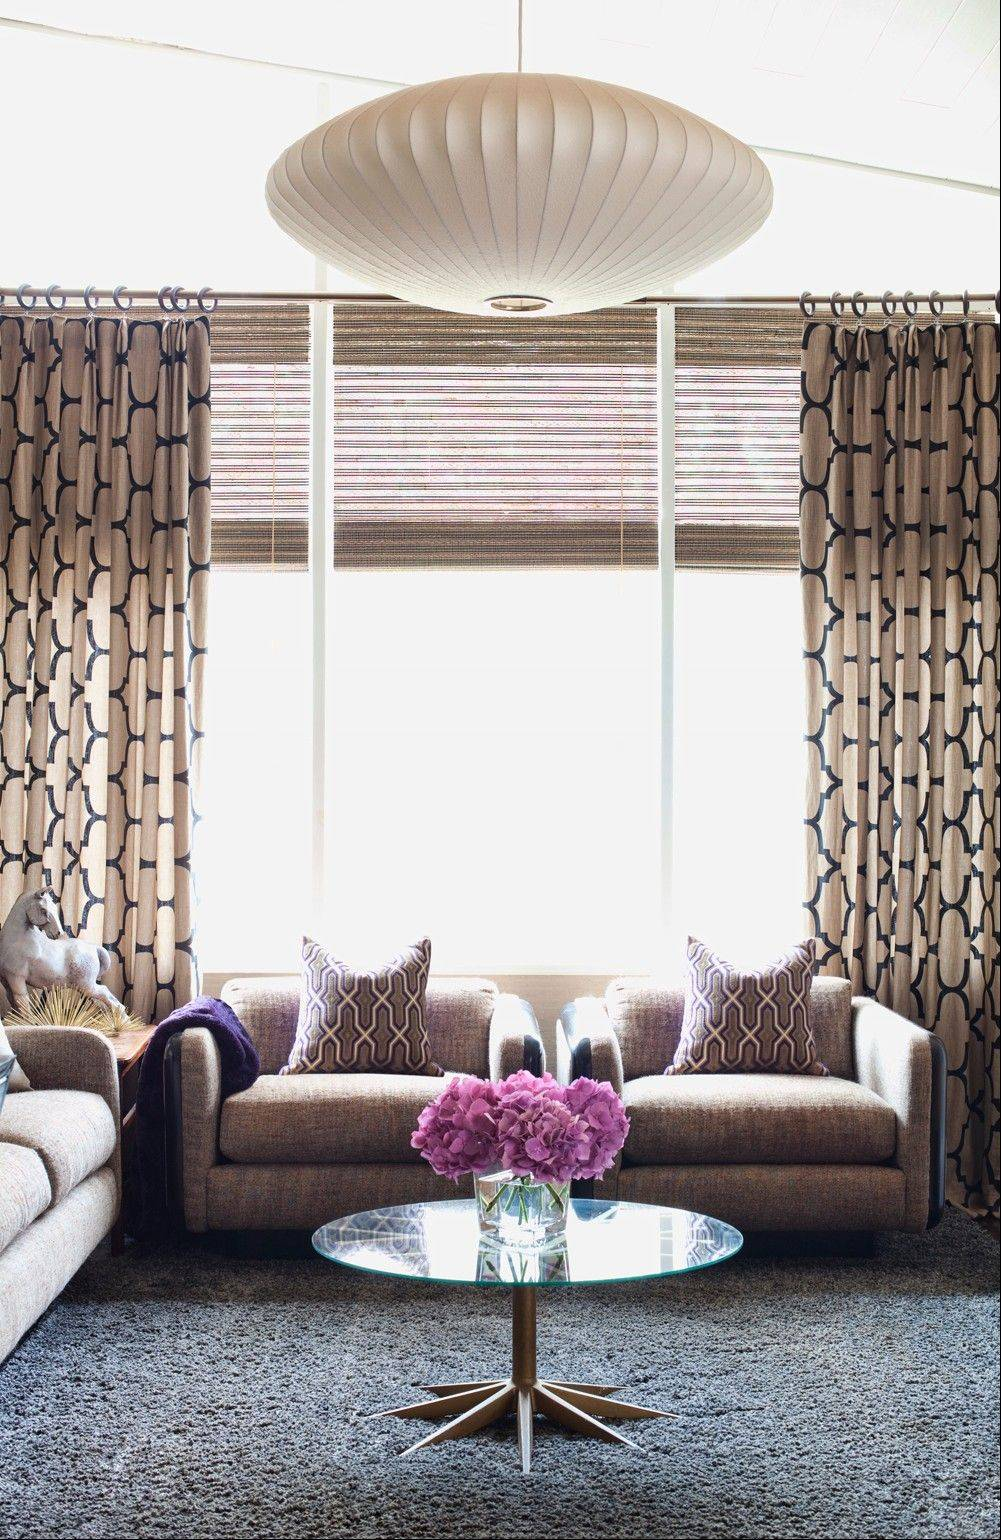 Interior designer Brian Patrick Flynn uses texture in the pillows and drapery to show off the windows in this living room.